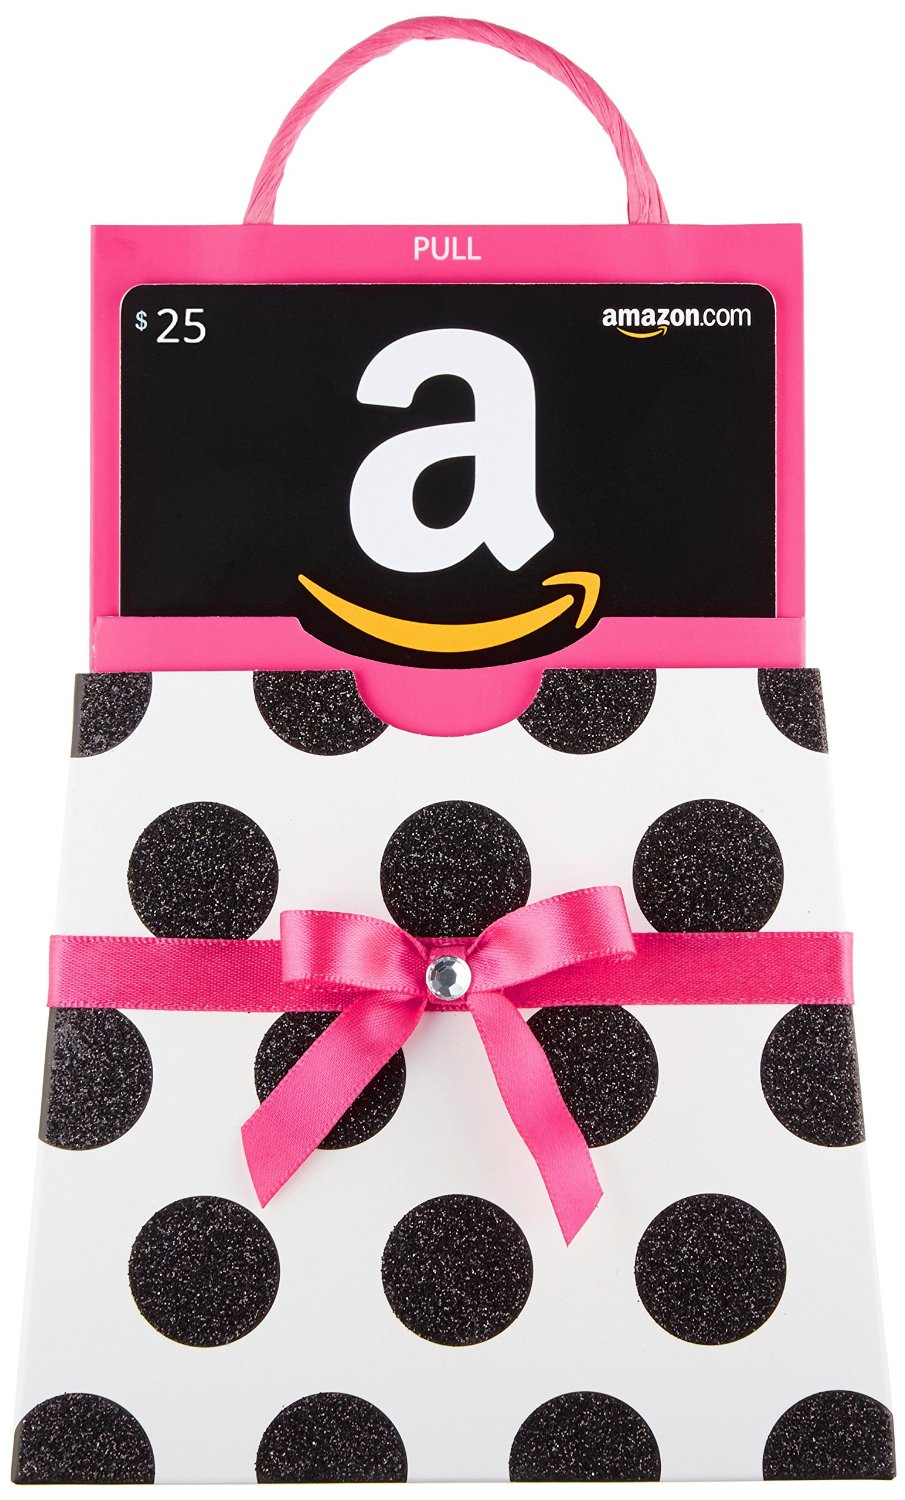 Amazon.com Gift Card with Polka Dot Bag | 25+ Valentine's Day gifts for her